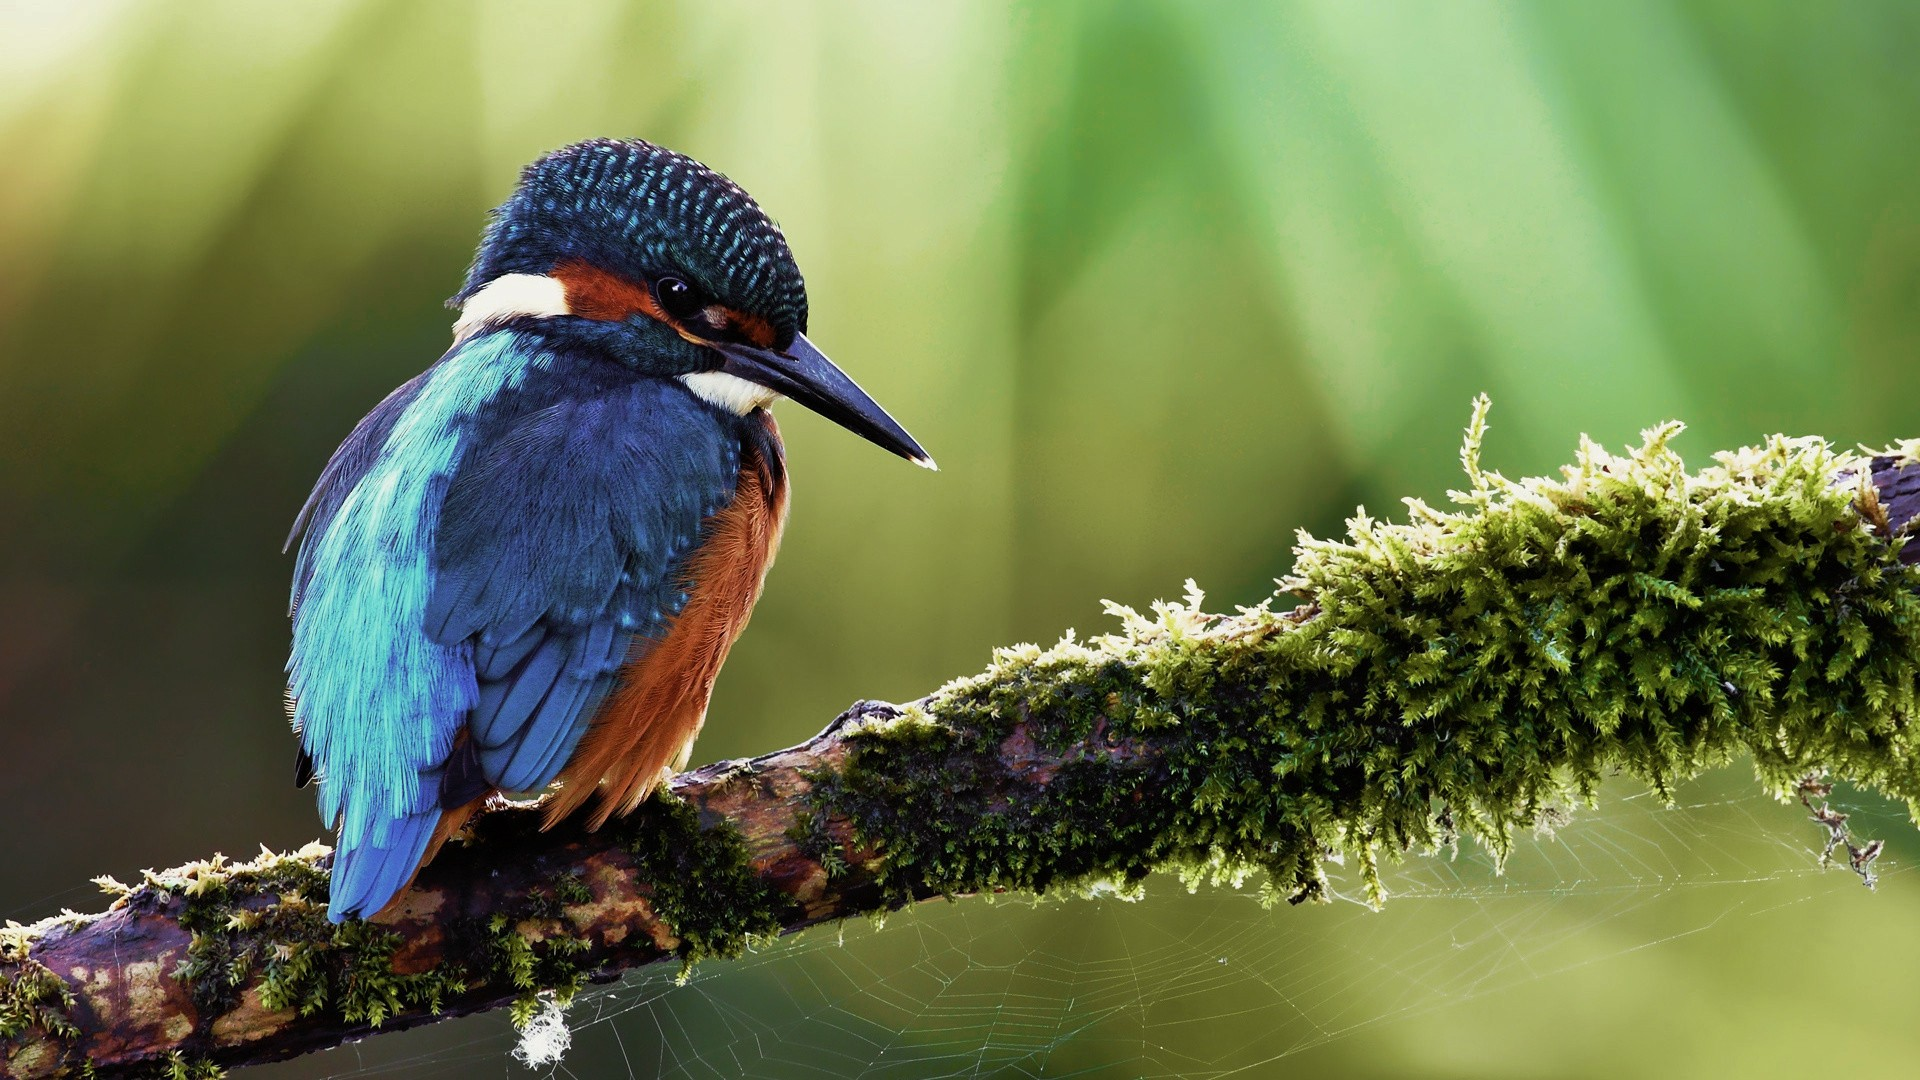 Kingfisher Calendar Wallpaper : Kingfisher calendar pictures hd desktop wallpapers k